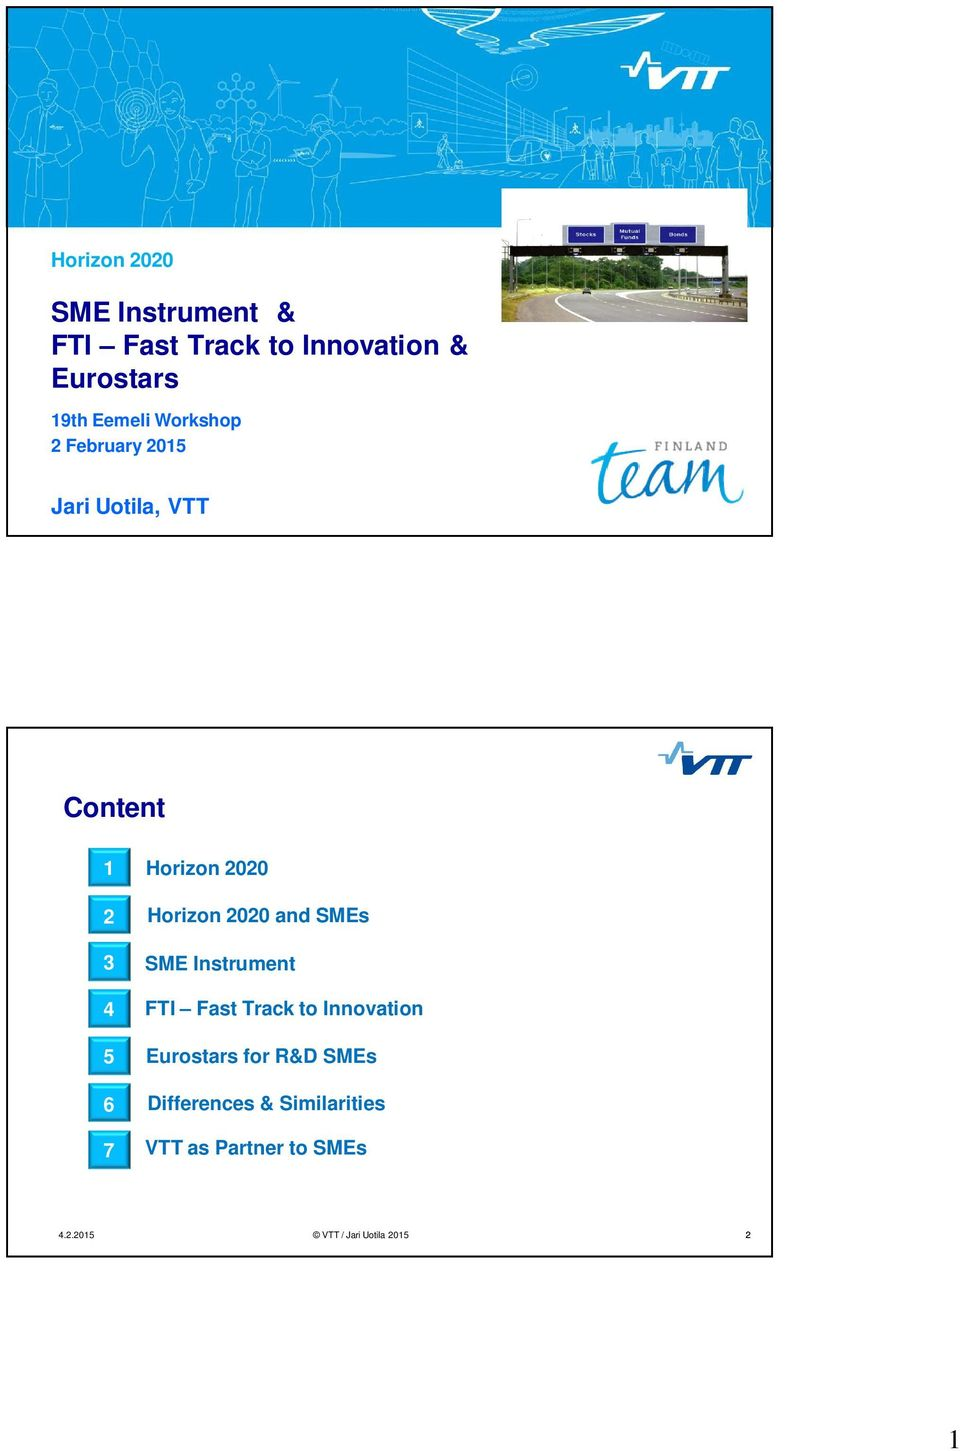 Horizon 2020 2Second Horizon level2020 and SMEs 3 SME Instrument 4 FTI Fast Track to